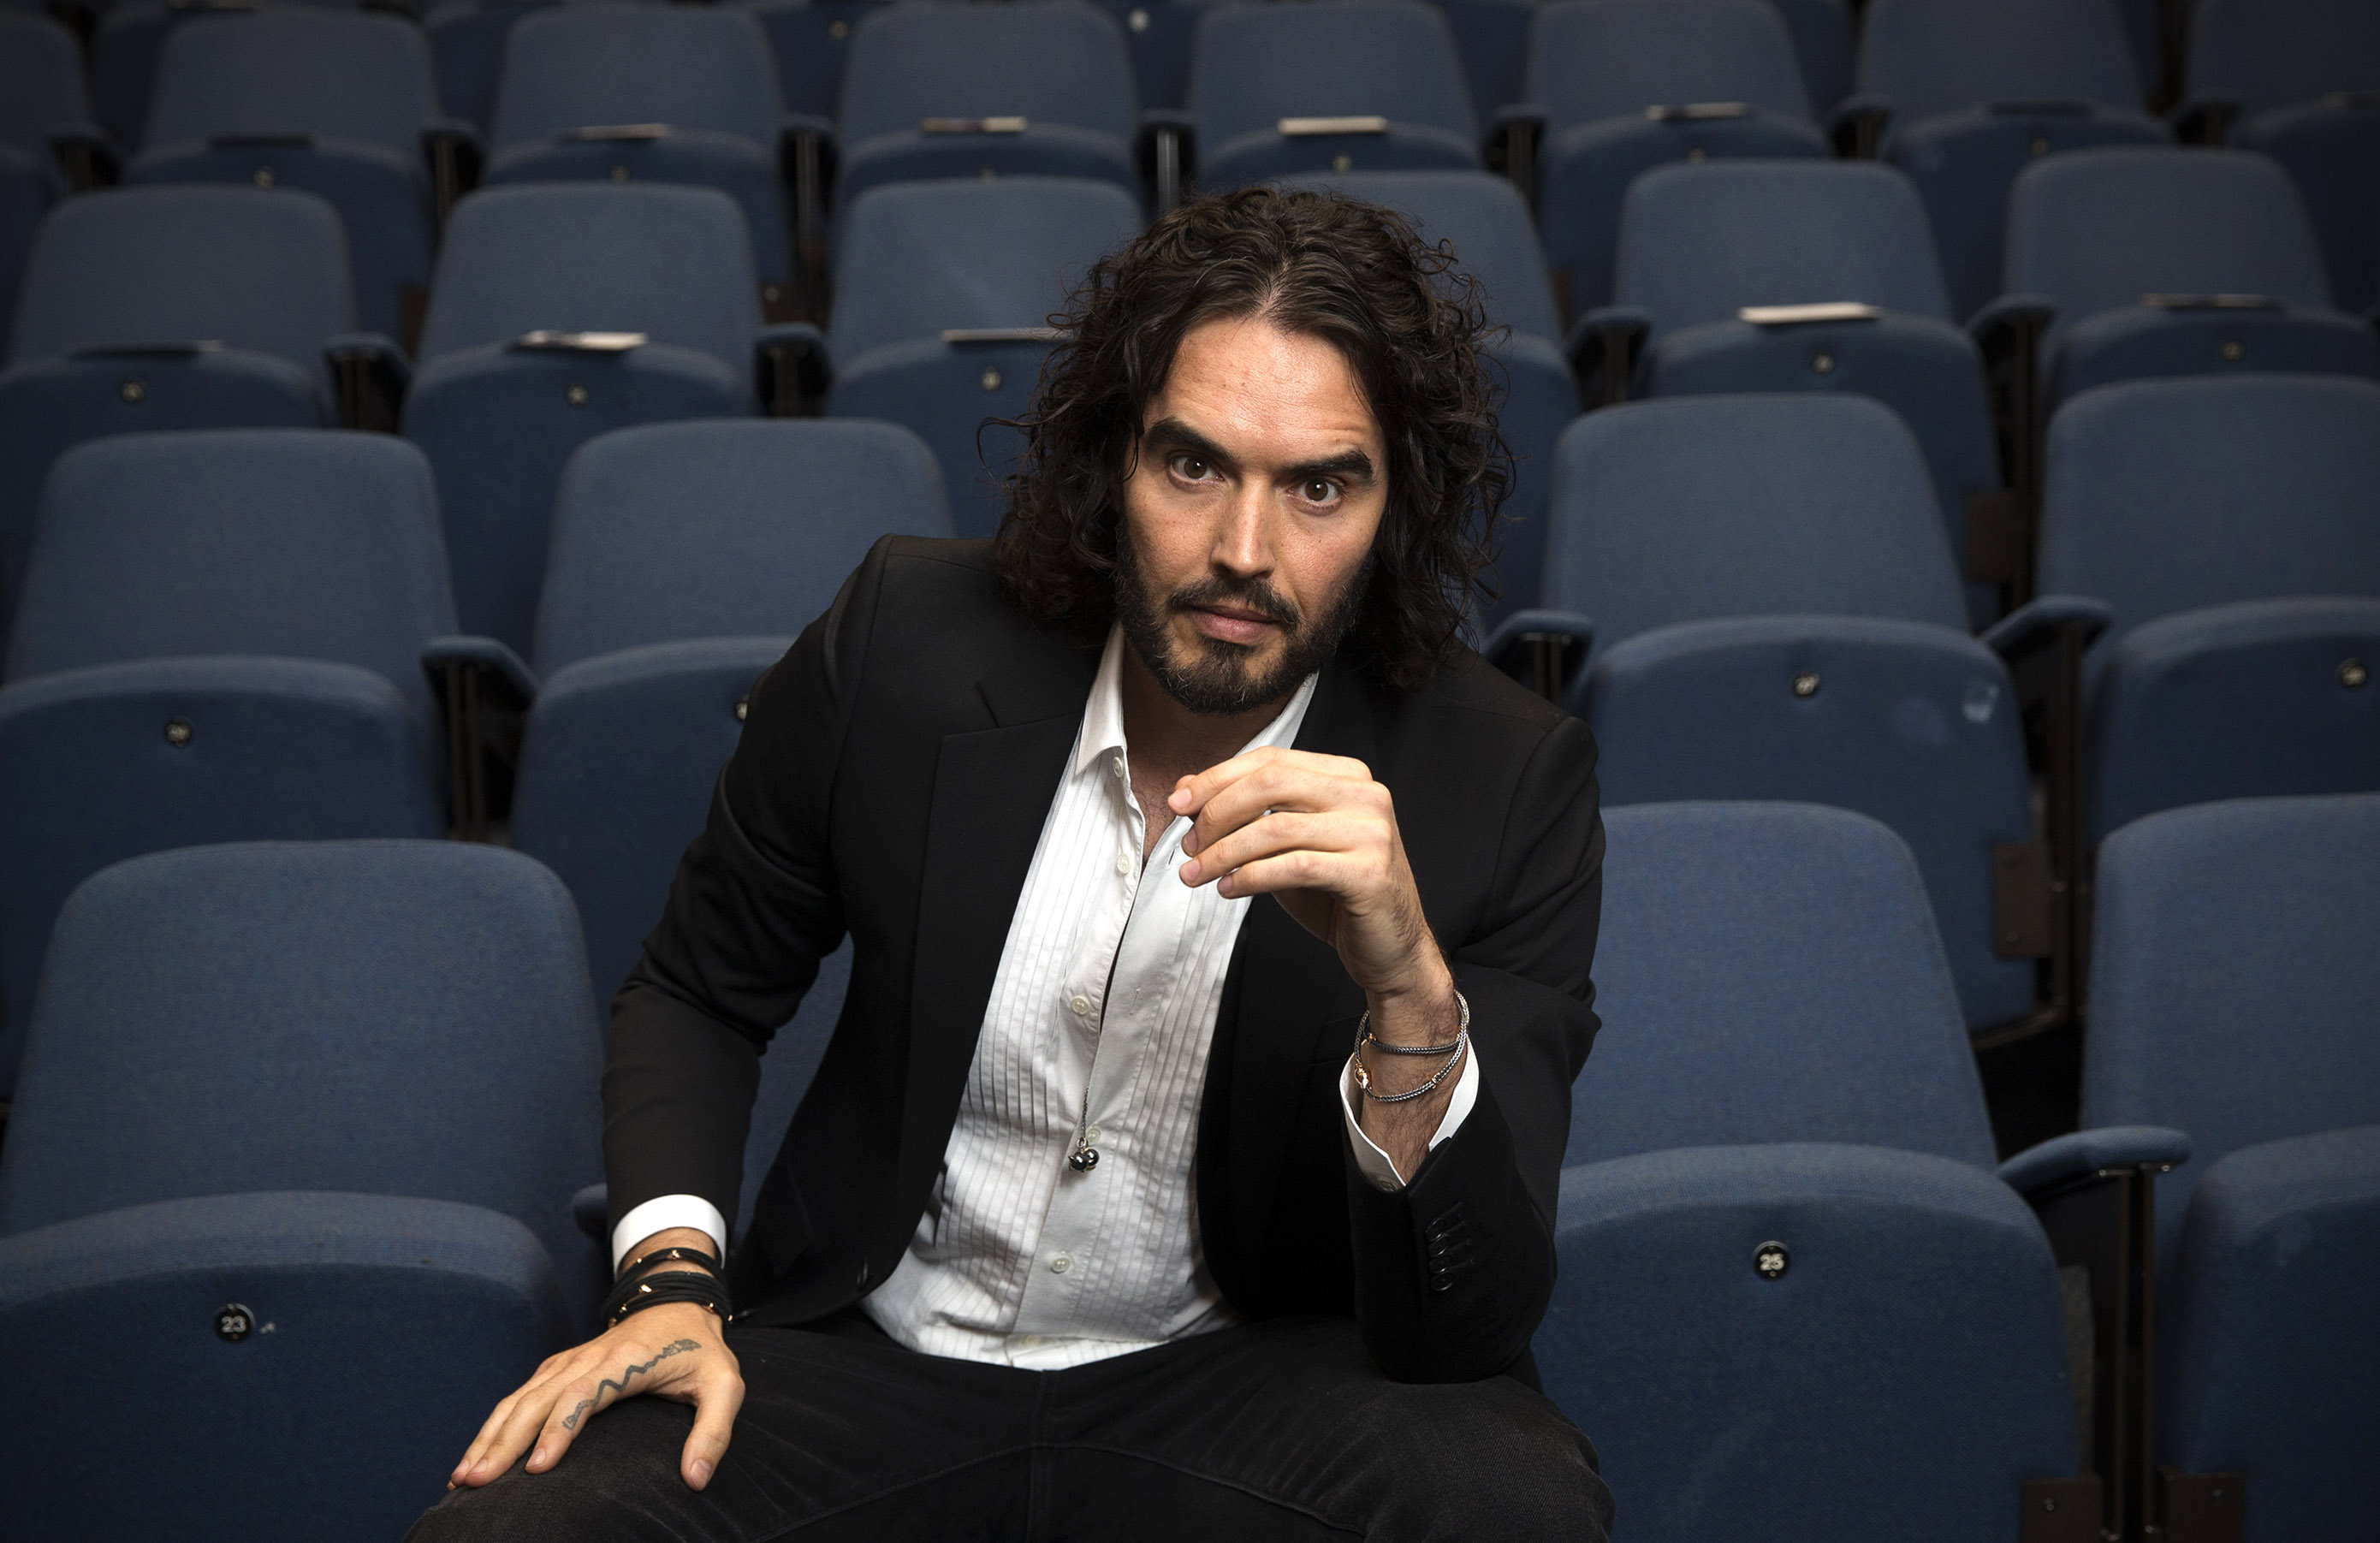 Russell Brand poses for photographs as he arrives to deliver The Reading Agency Lecture at The Institute of Education on Nov. 25, 2014 in London, England.